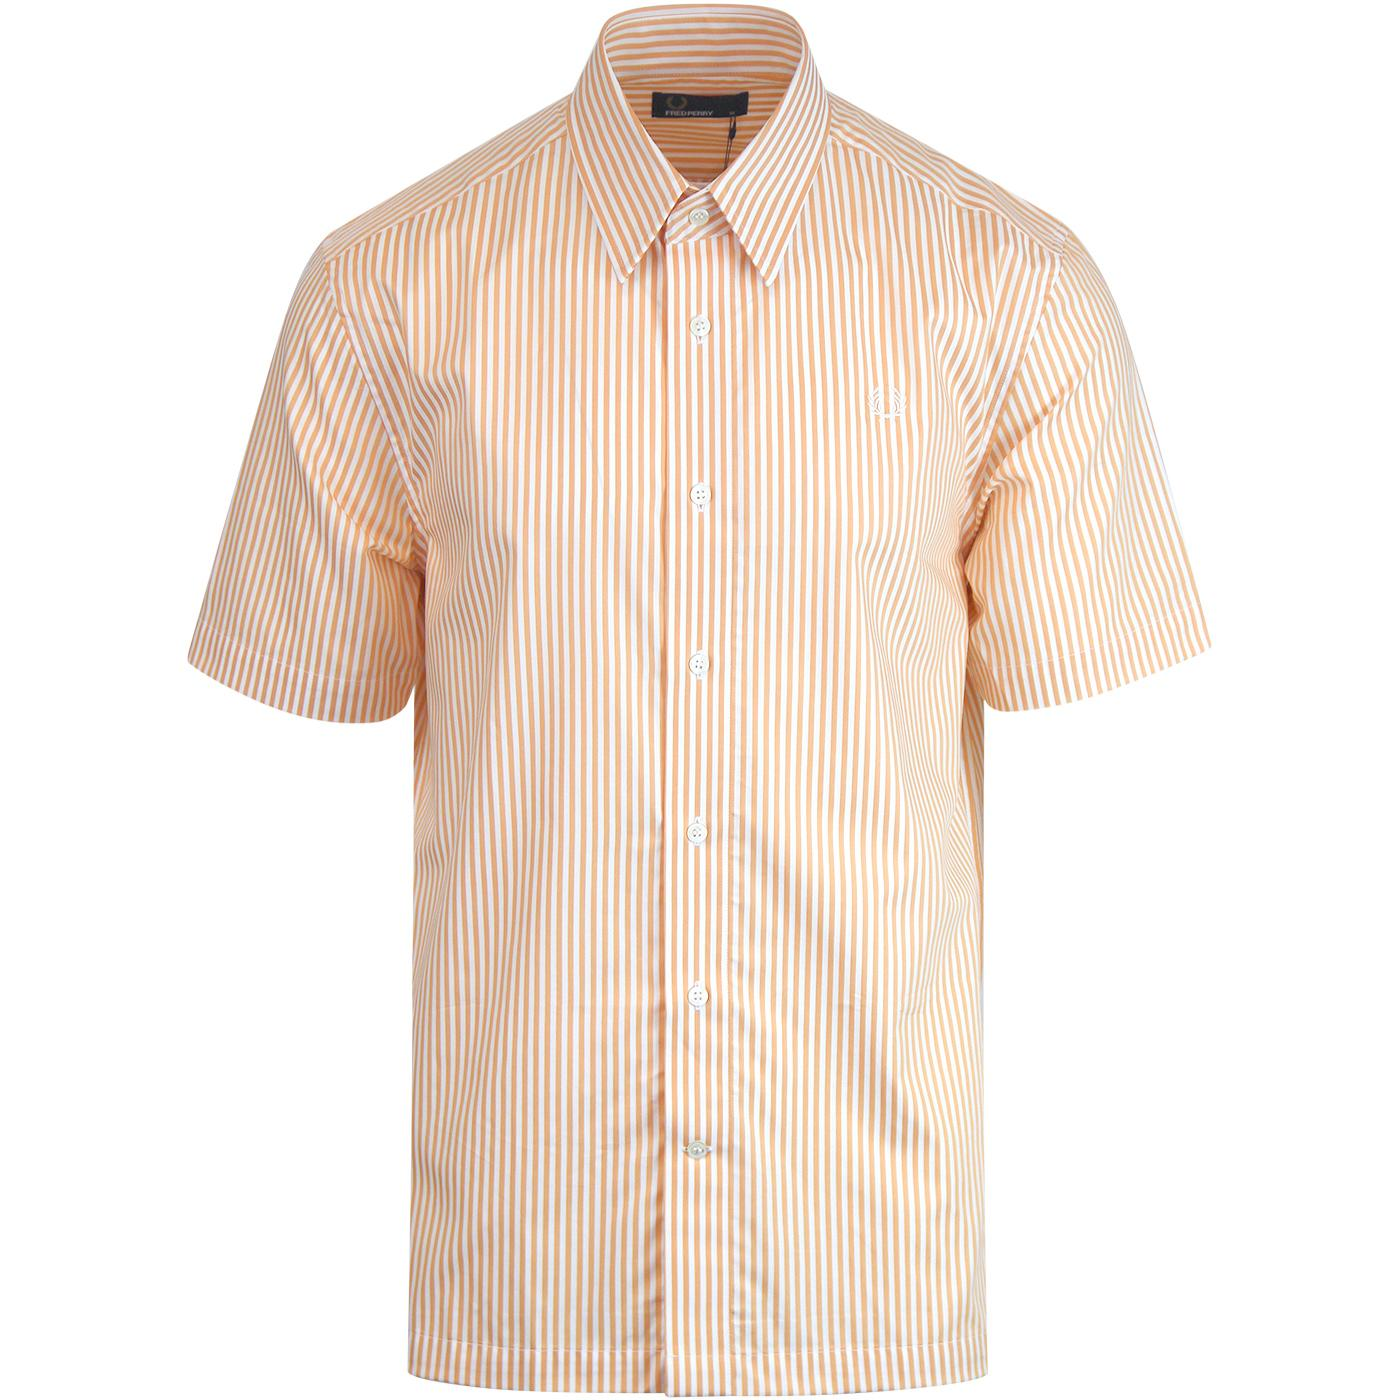 FRED PERRY S/S Vertical Stripe Mod Shirt APRICOT